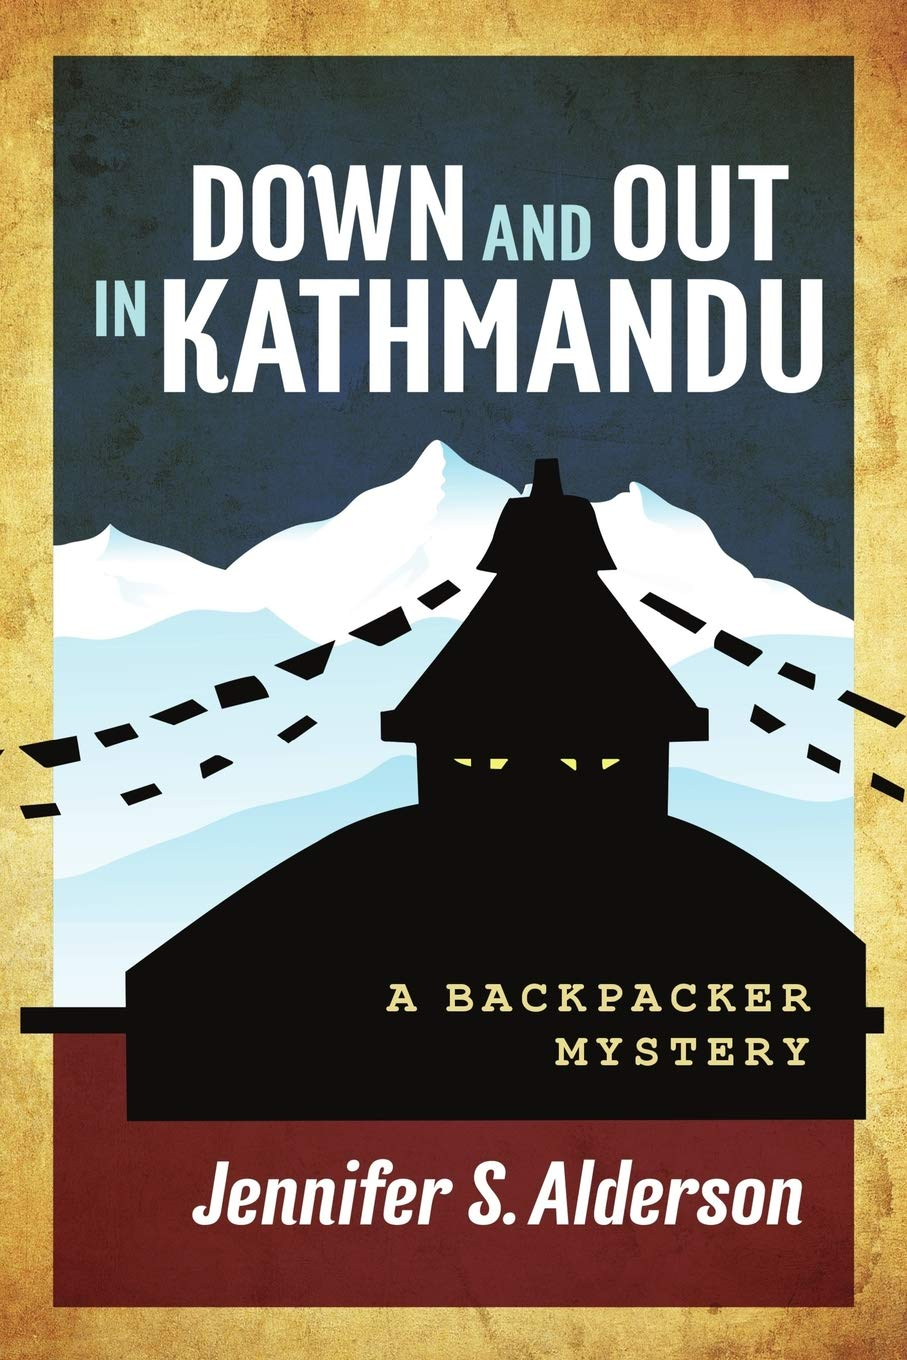 Down and Out in Kathmandu: A Backpacker Mystery (Adventures of Zelda Richardson) (Volume 1) pdf